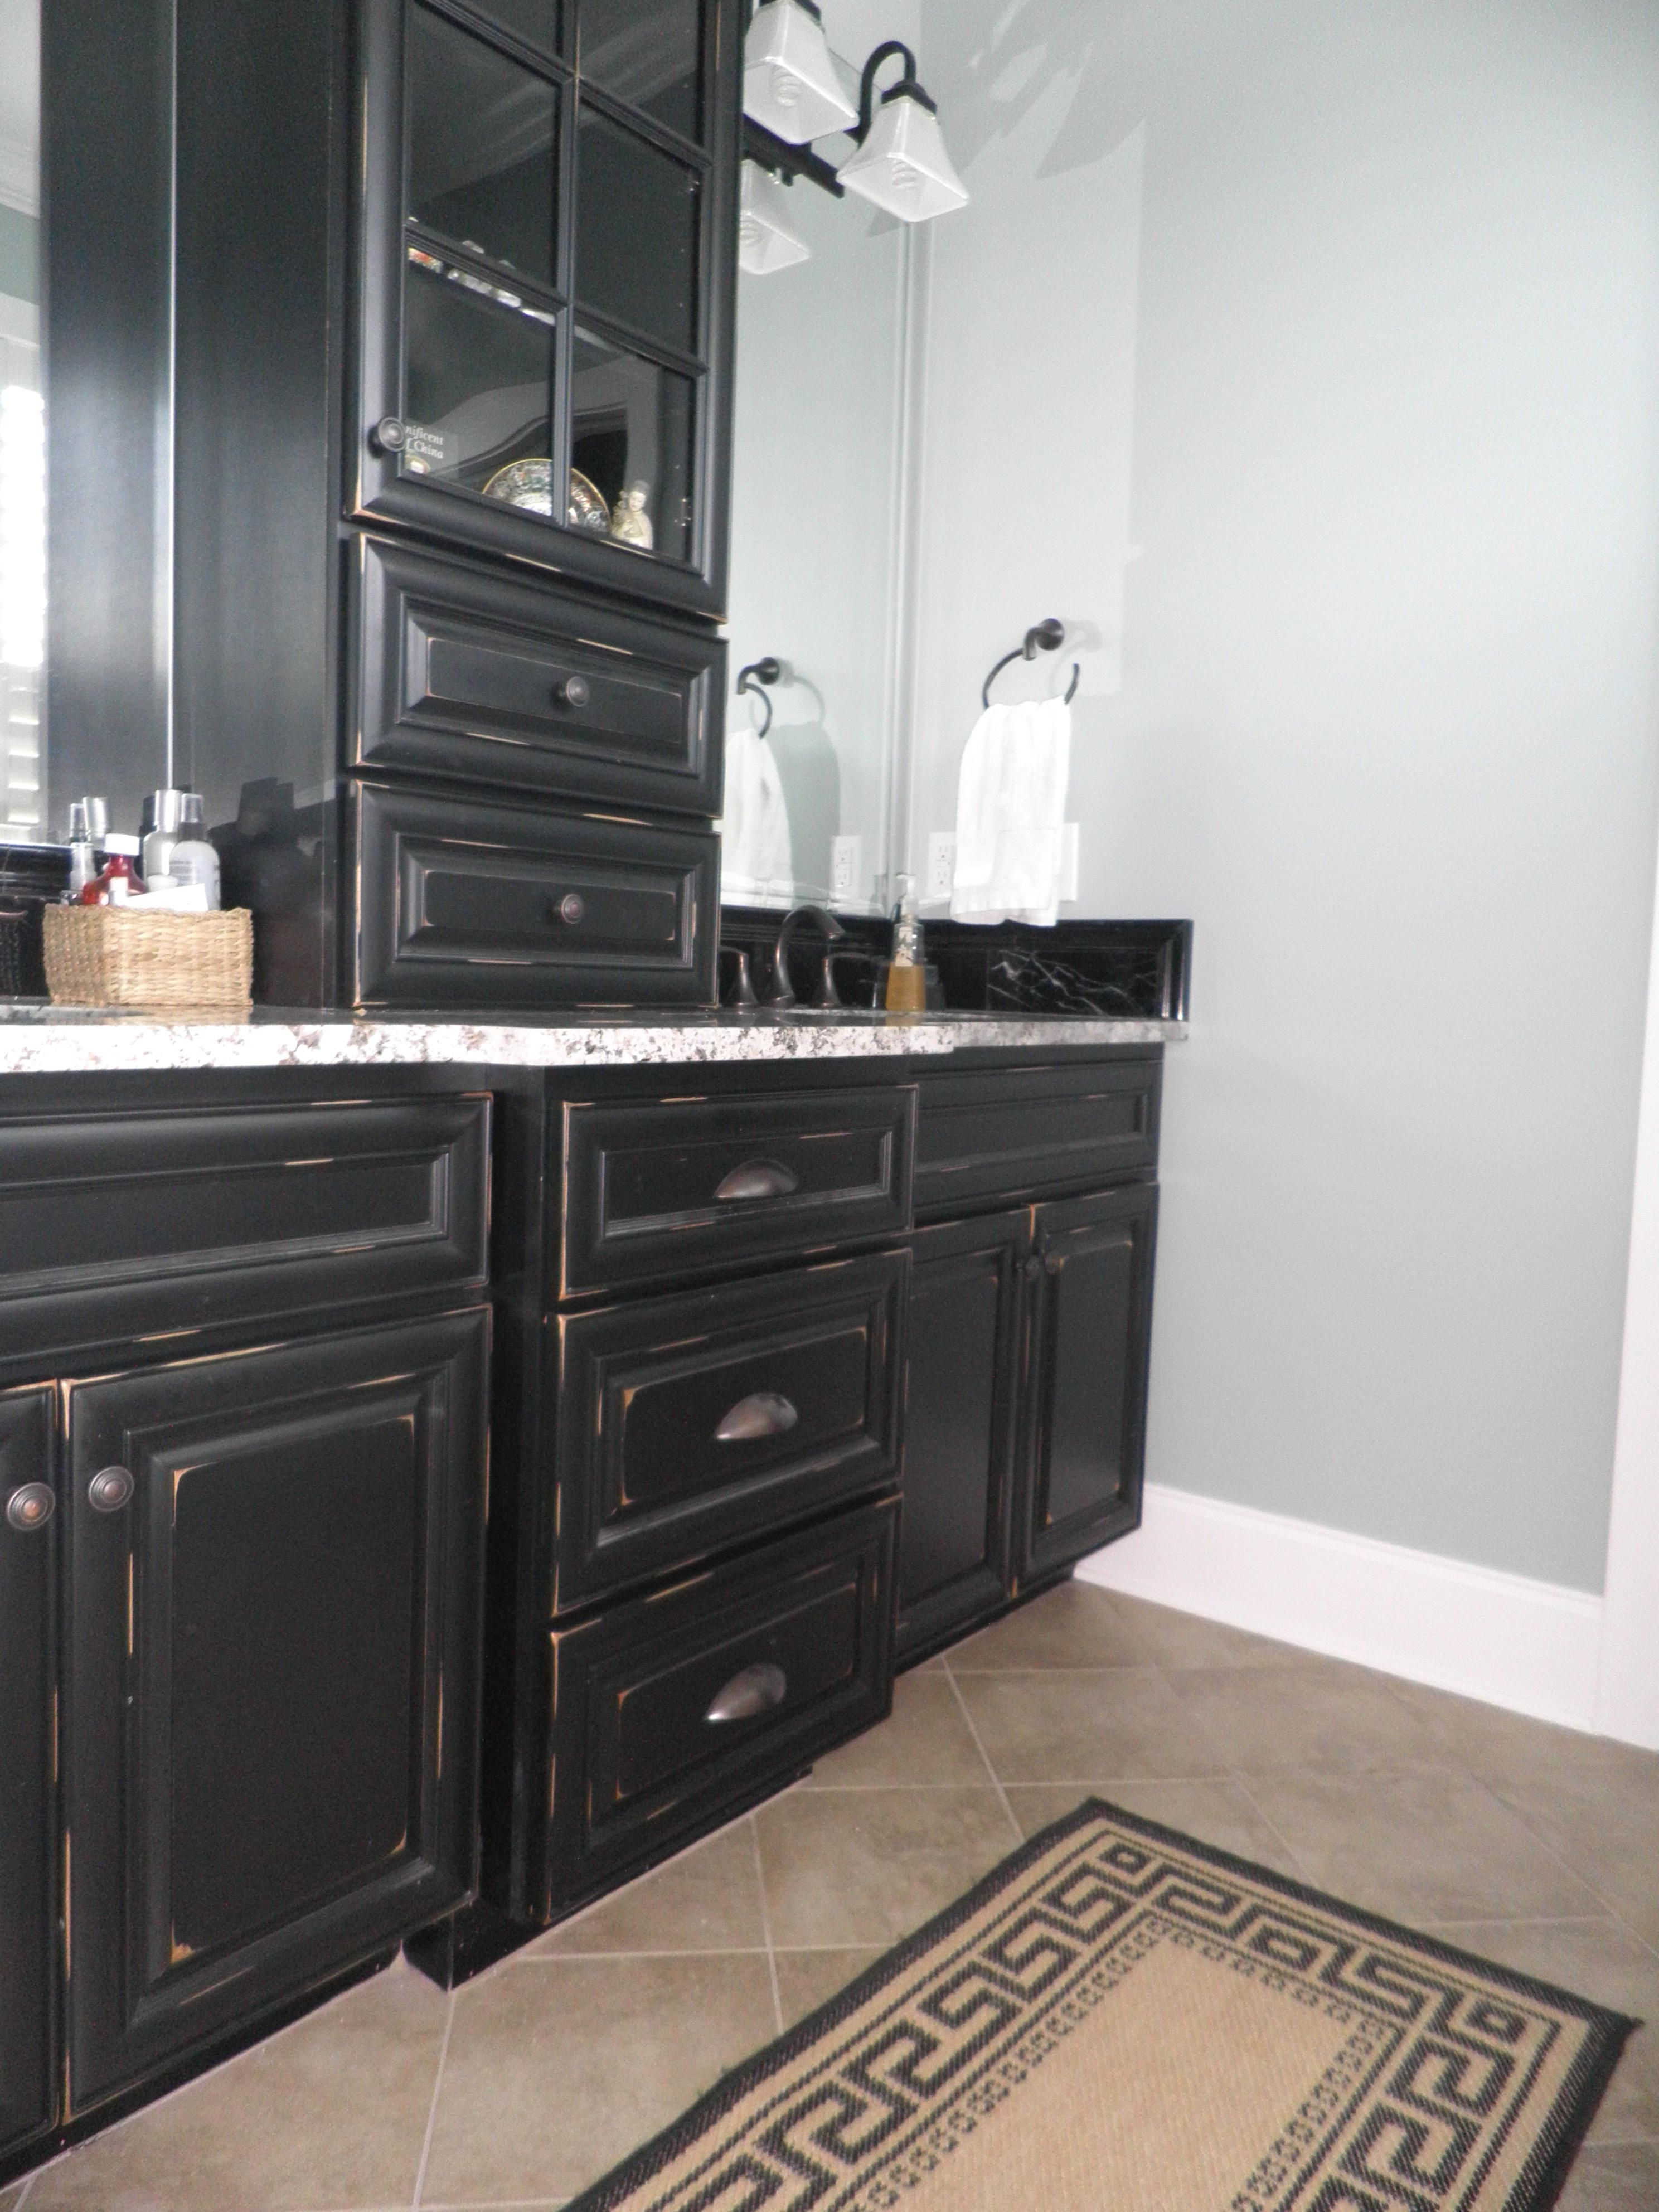 Vintage Onyx Distressed Finish Kitchen Cabinets Milk Paint Faux Simple Kitchens Pottery Barn Cabinet In 2020 Kitchen Trends Painting Kitchen Cabinets Kitchen Cabinets